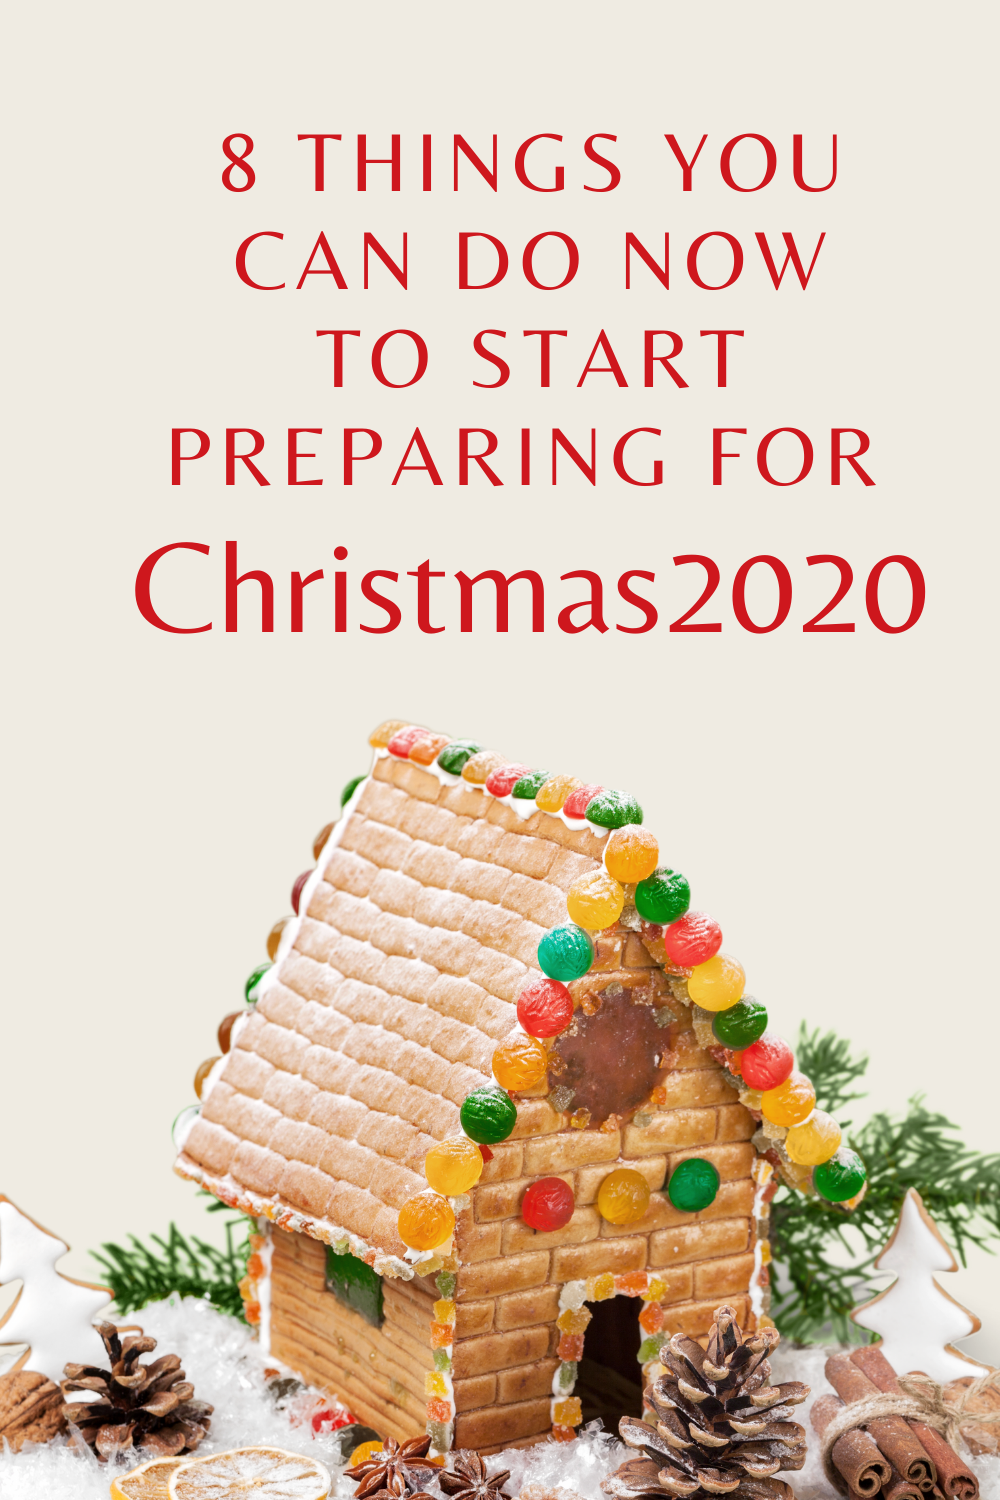 Preparing For Christmas 2020 8 things you can do now to start preparing for Christmas 2020